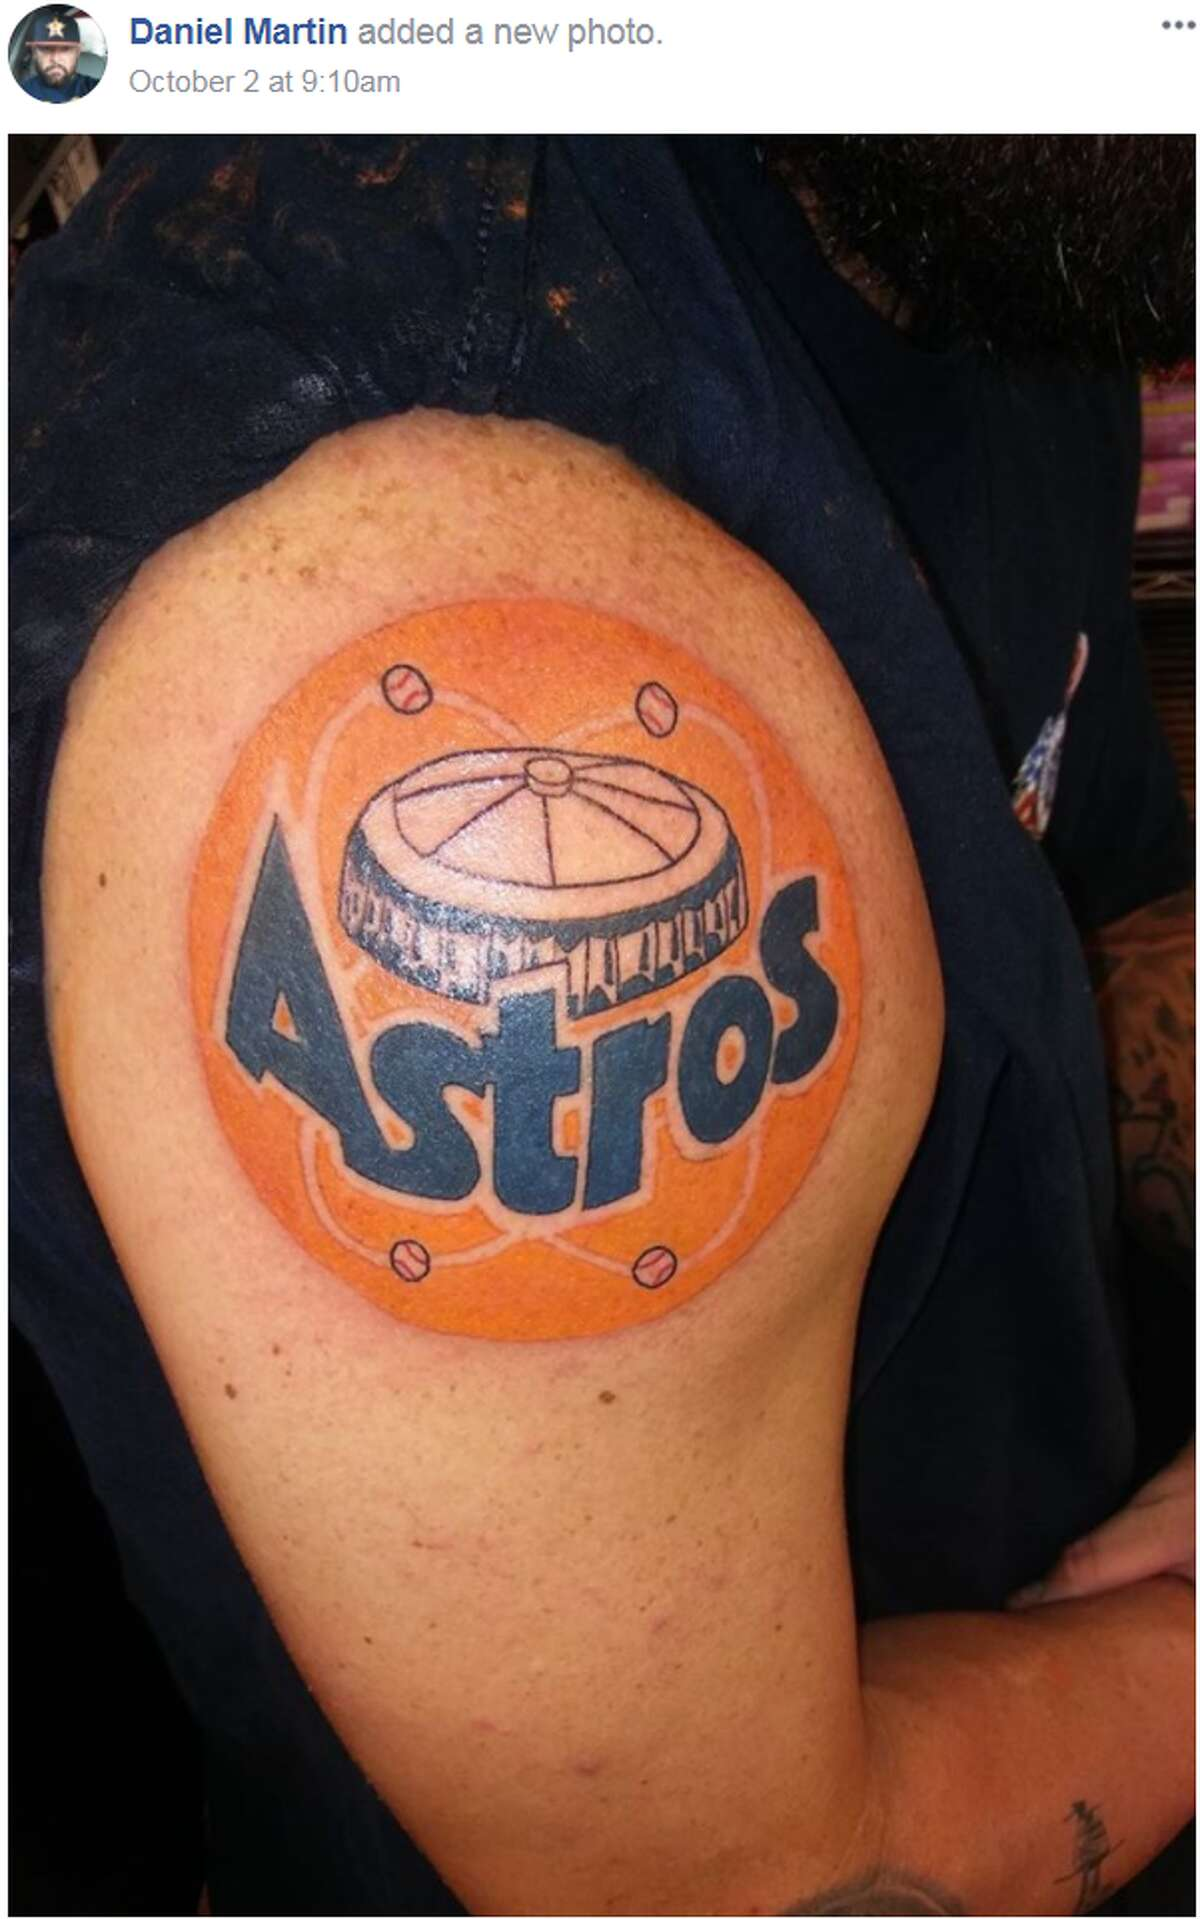 Fan reps an Astros inspired tattoo along with the Houston Astrodome. @danielmartin